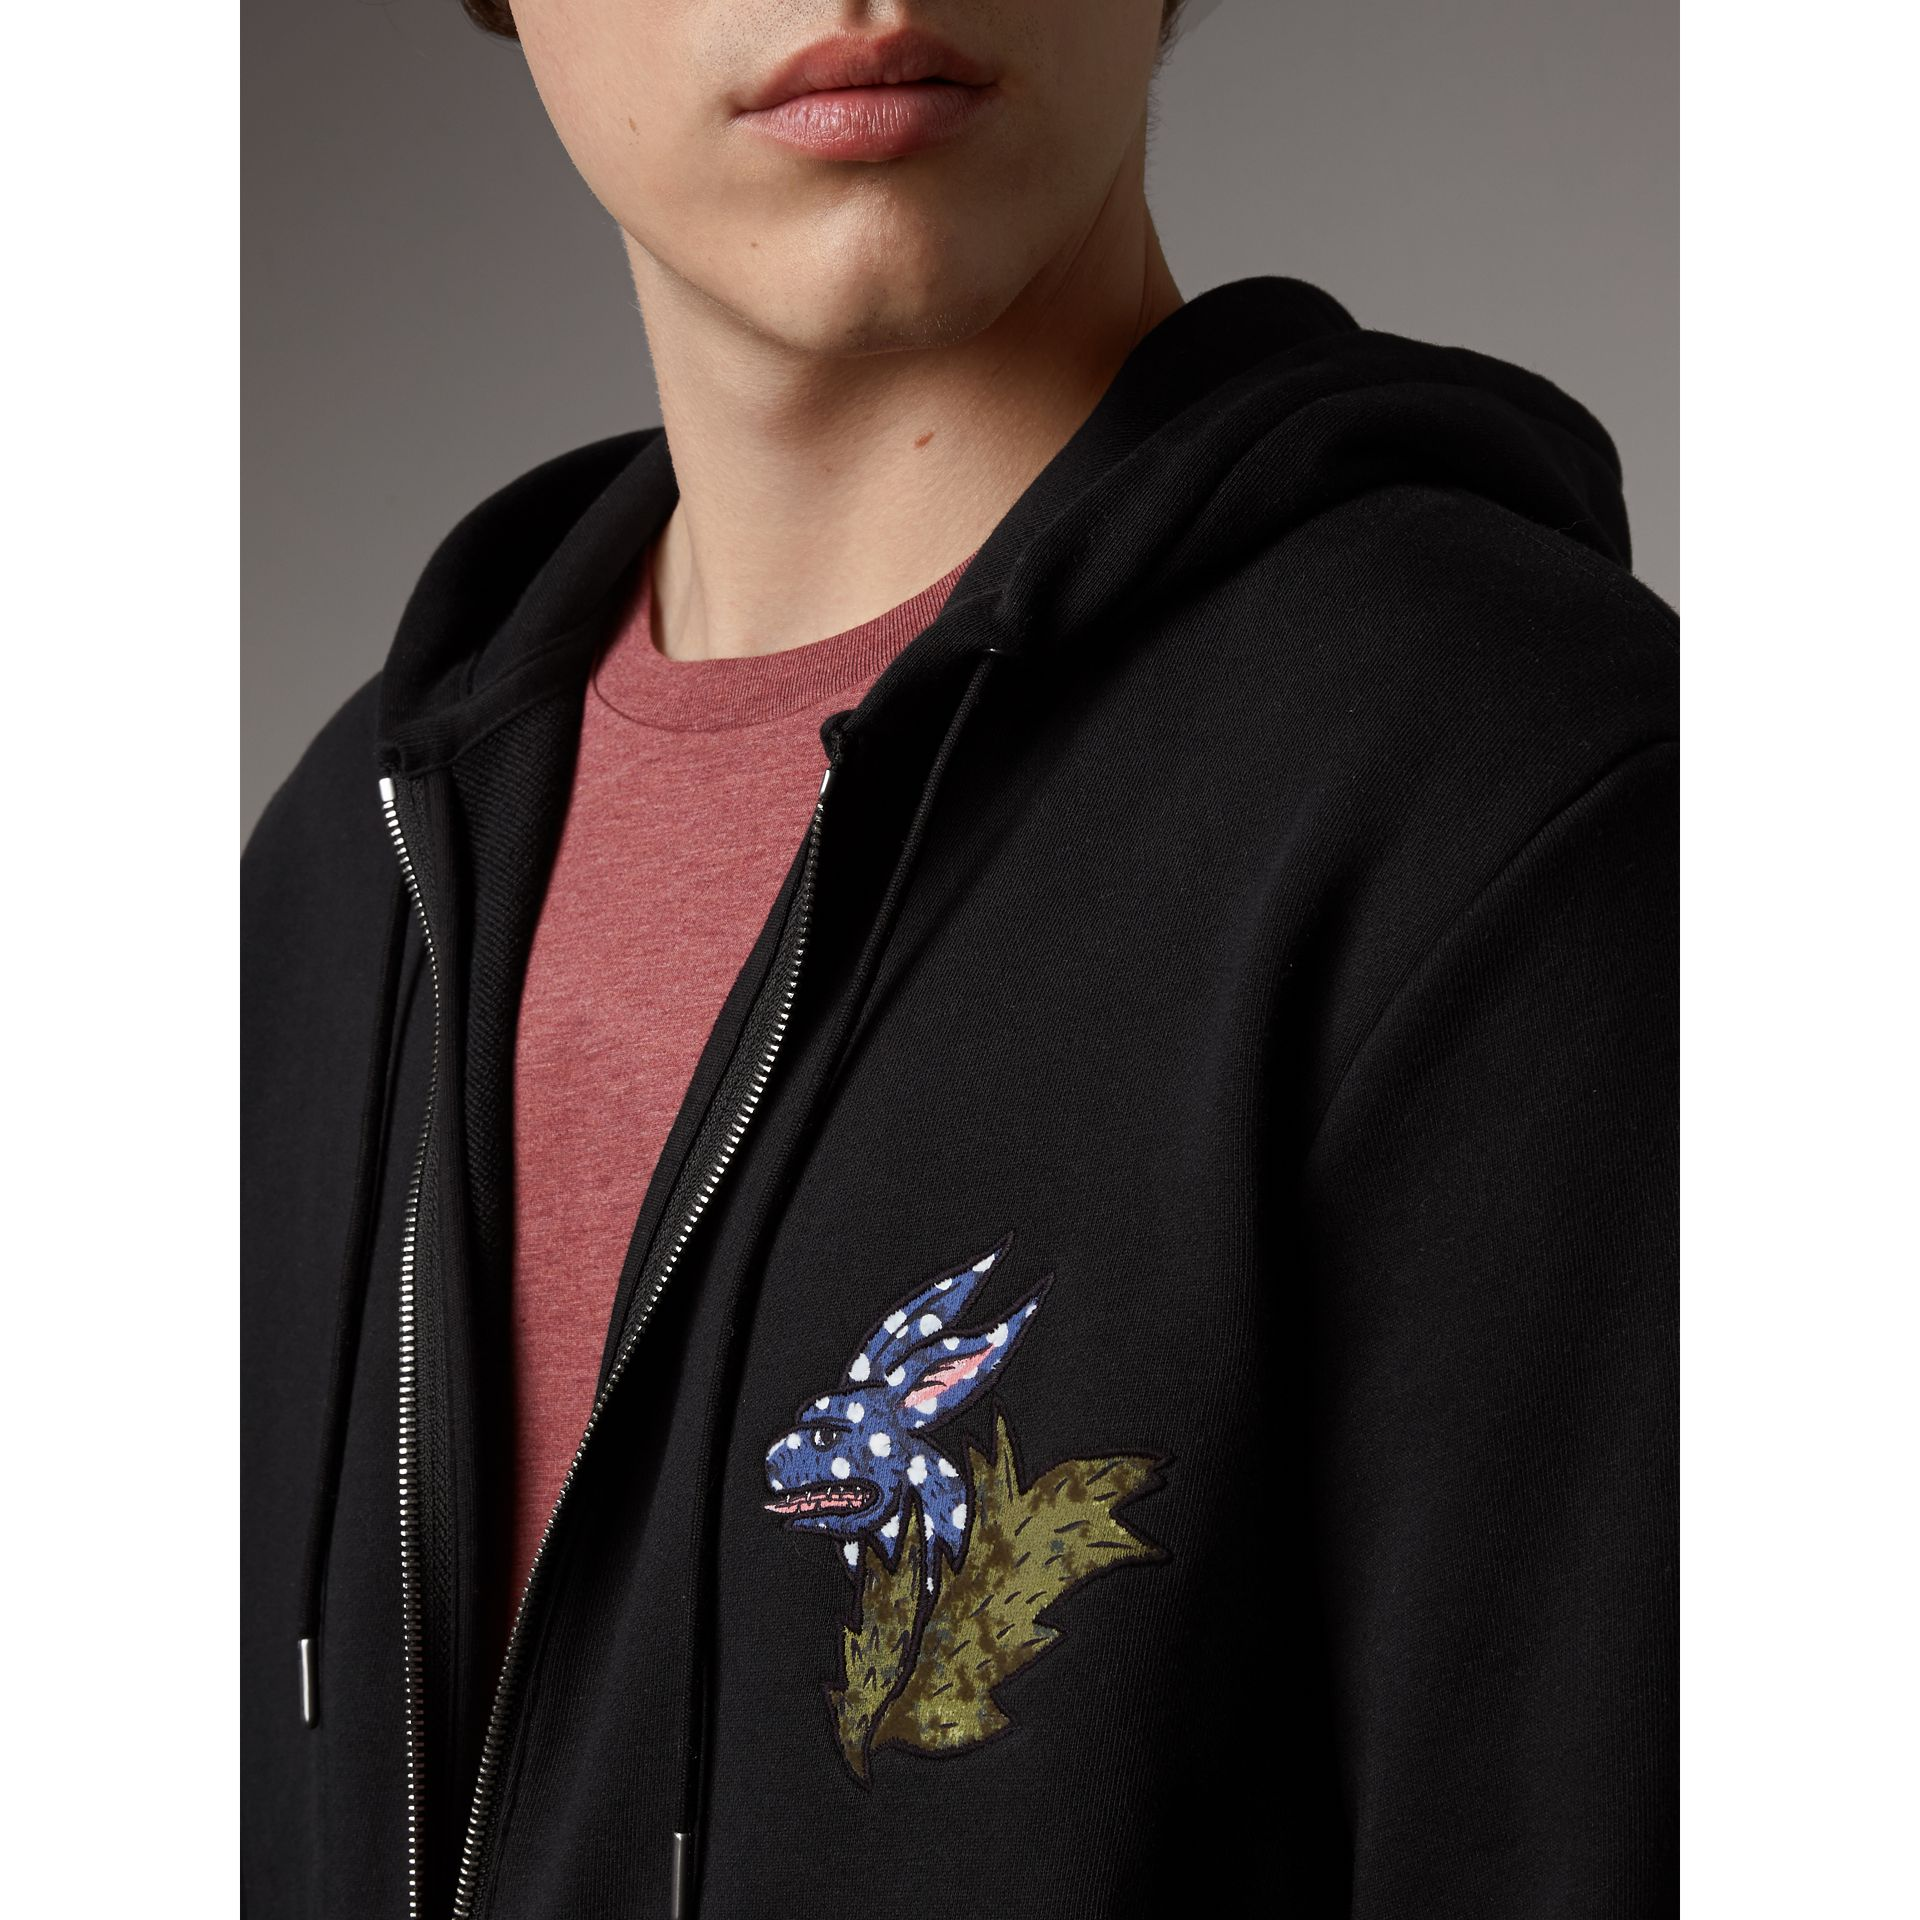 Beasts Motif Cotton Hooded Top in Black - Men | Burberry - gallery image 2